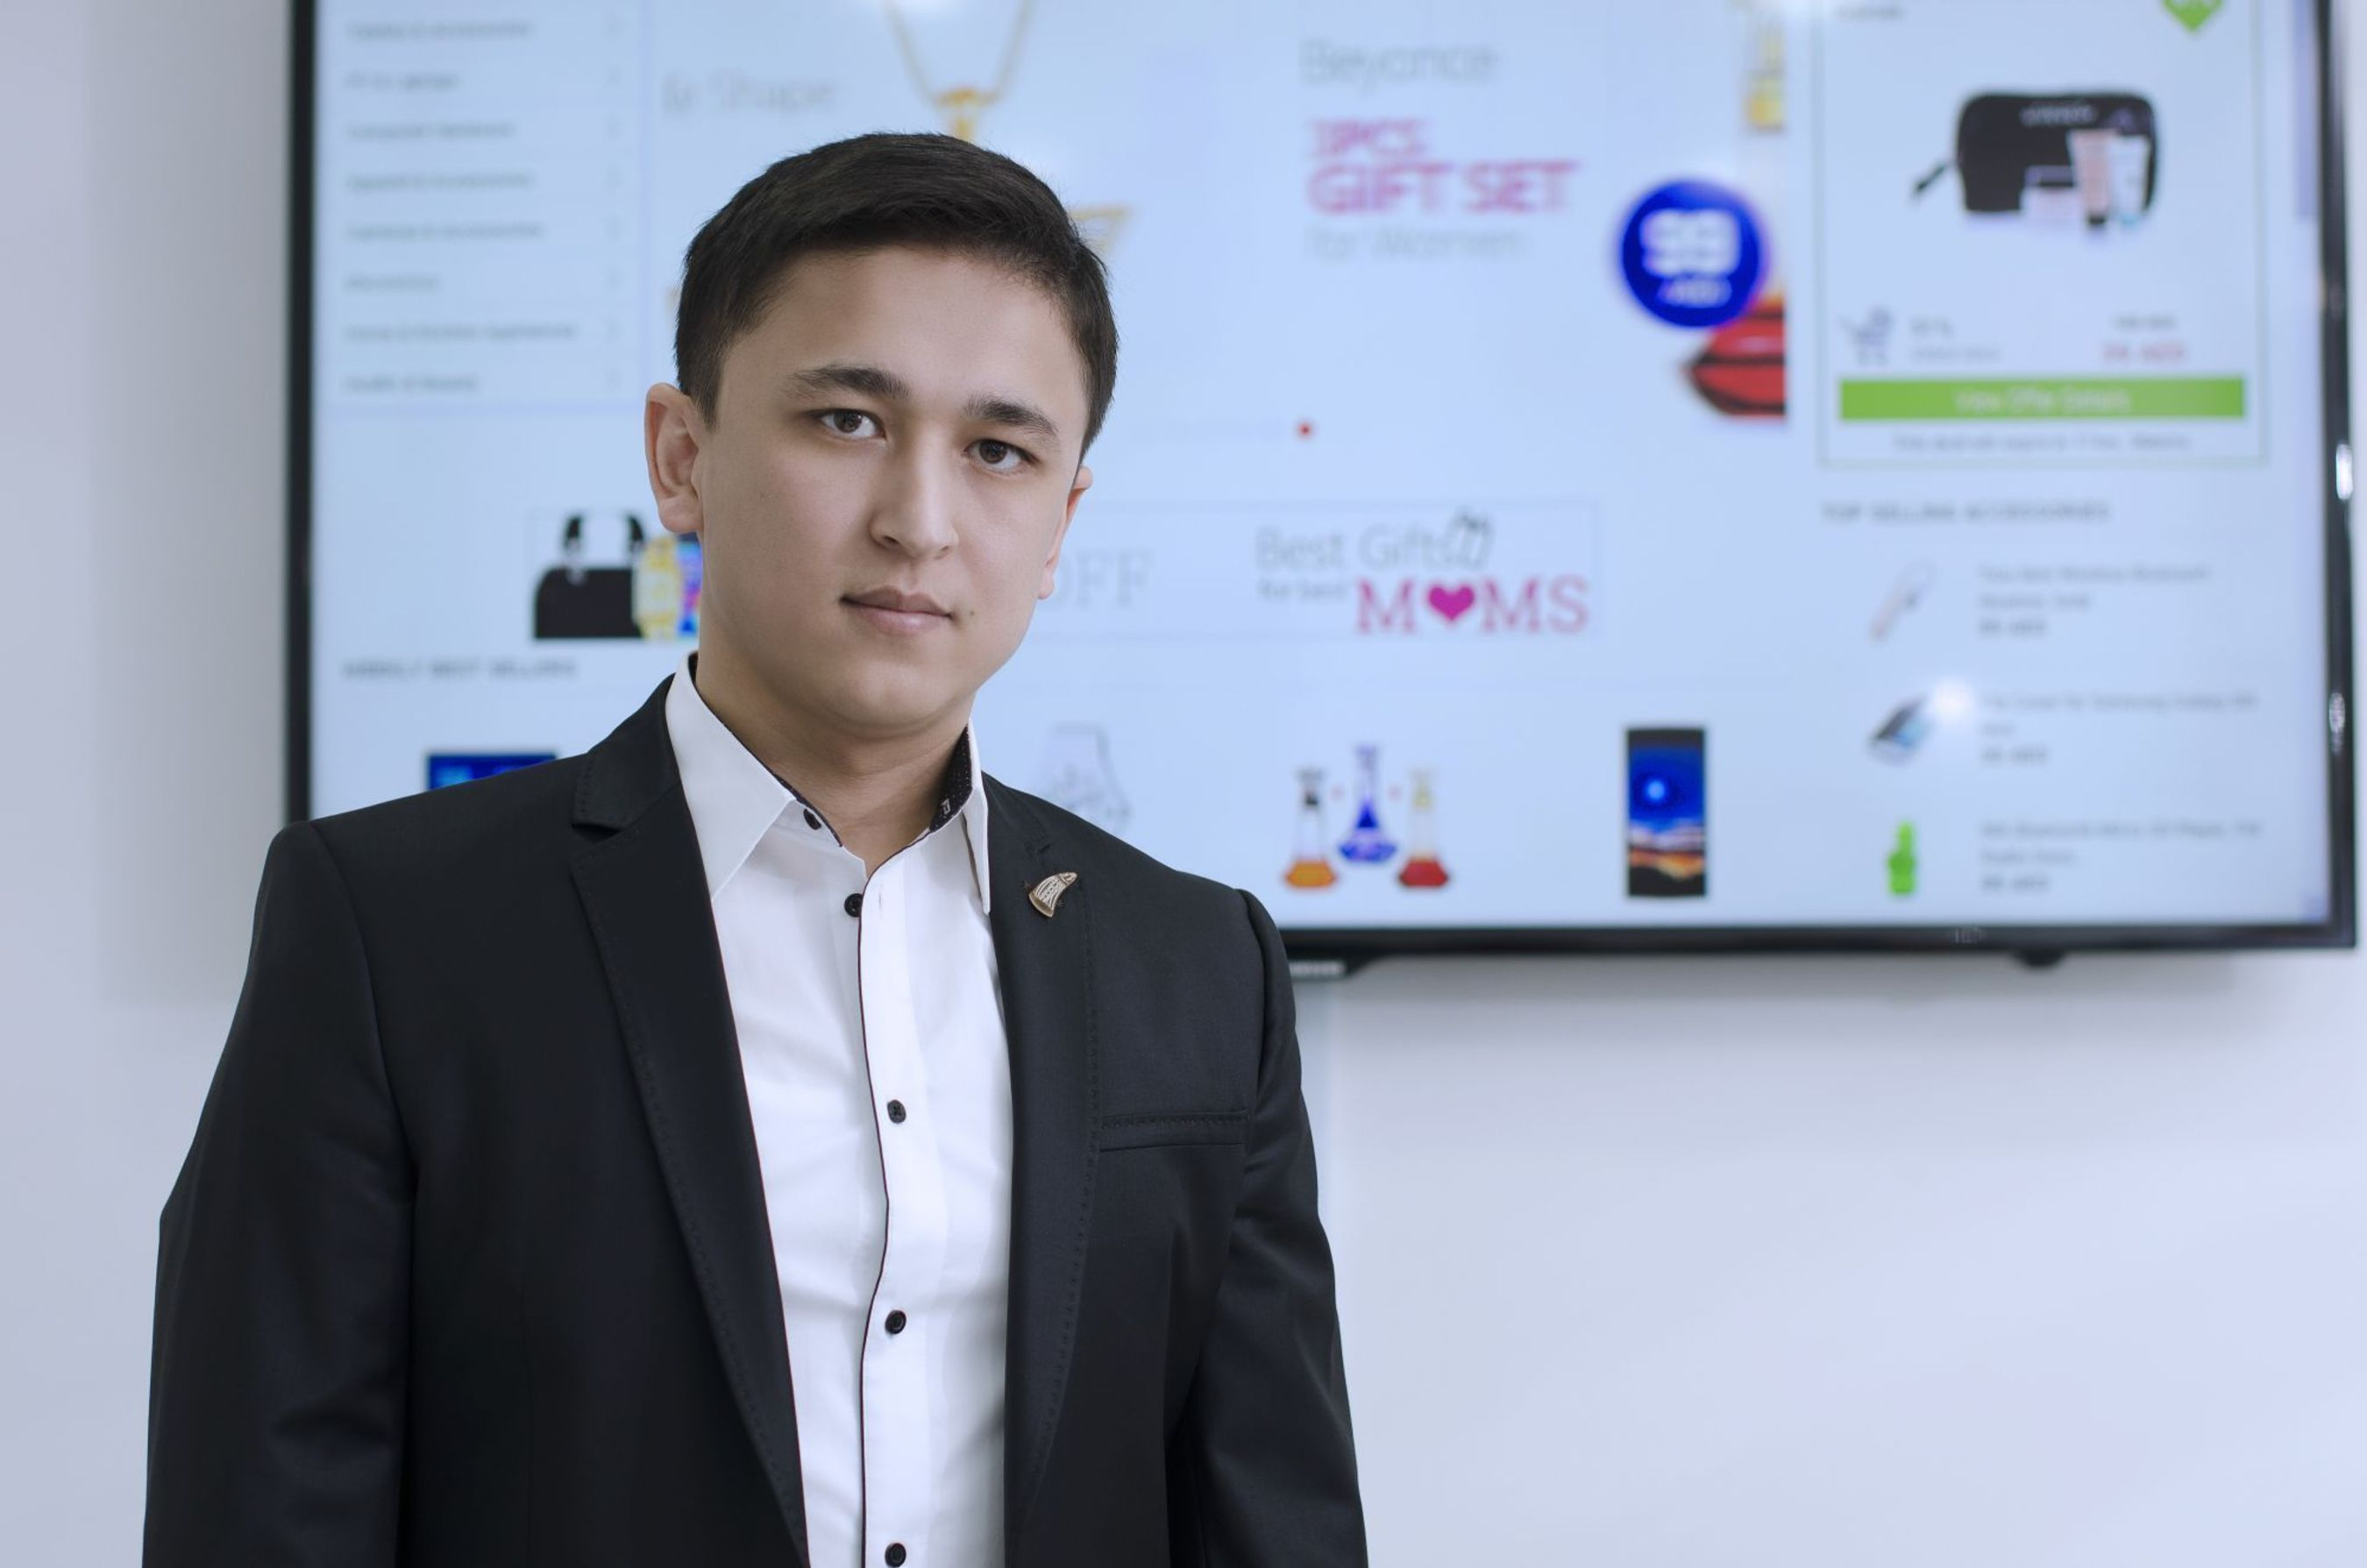 Ulugbek Yulshadev, founder of Awok.com, the leading e-commerce site which is now celebrating its second year anniversary. (PRNewsFoto/Awok.com)